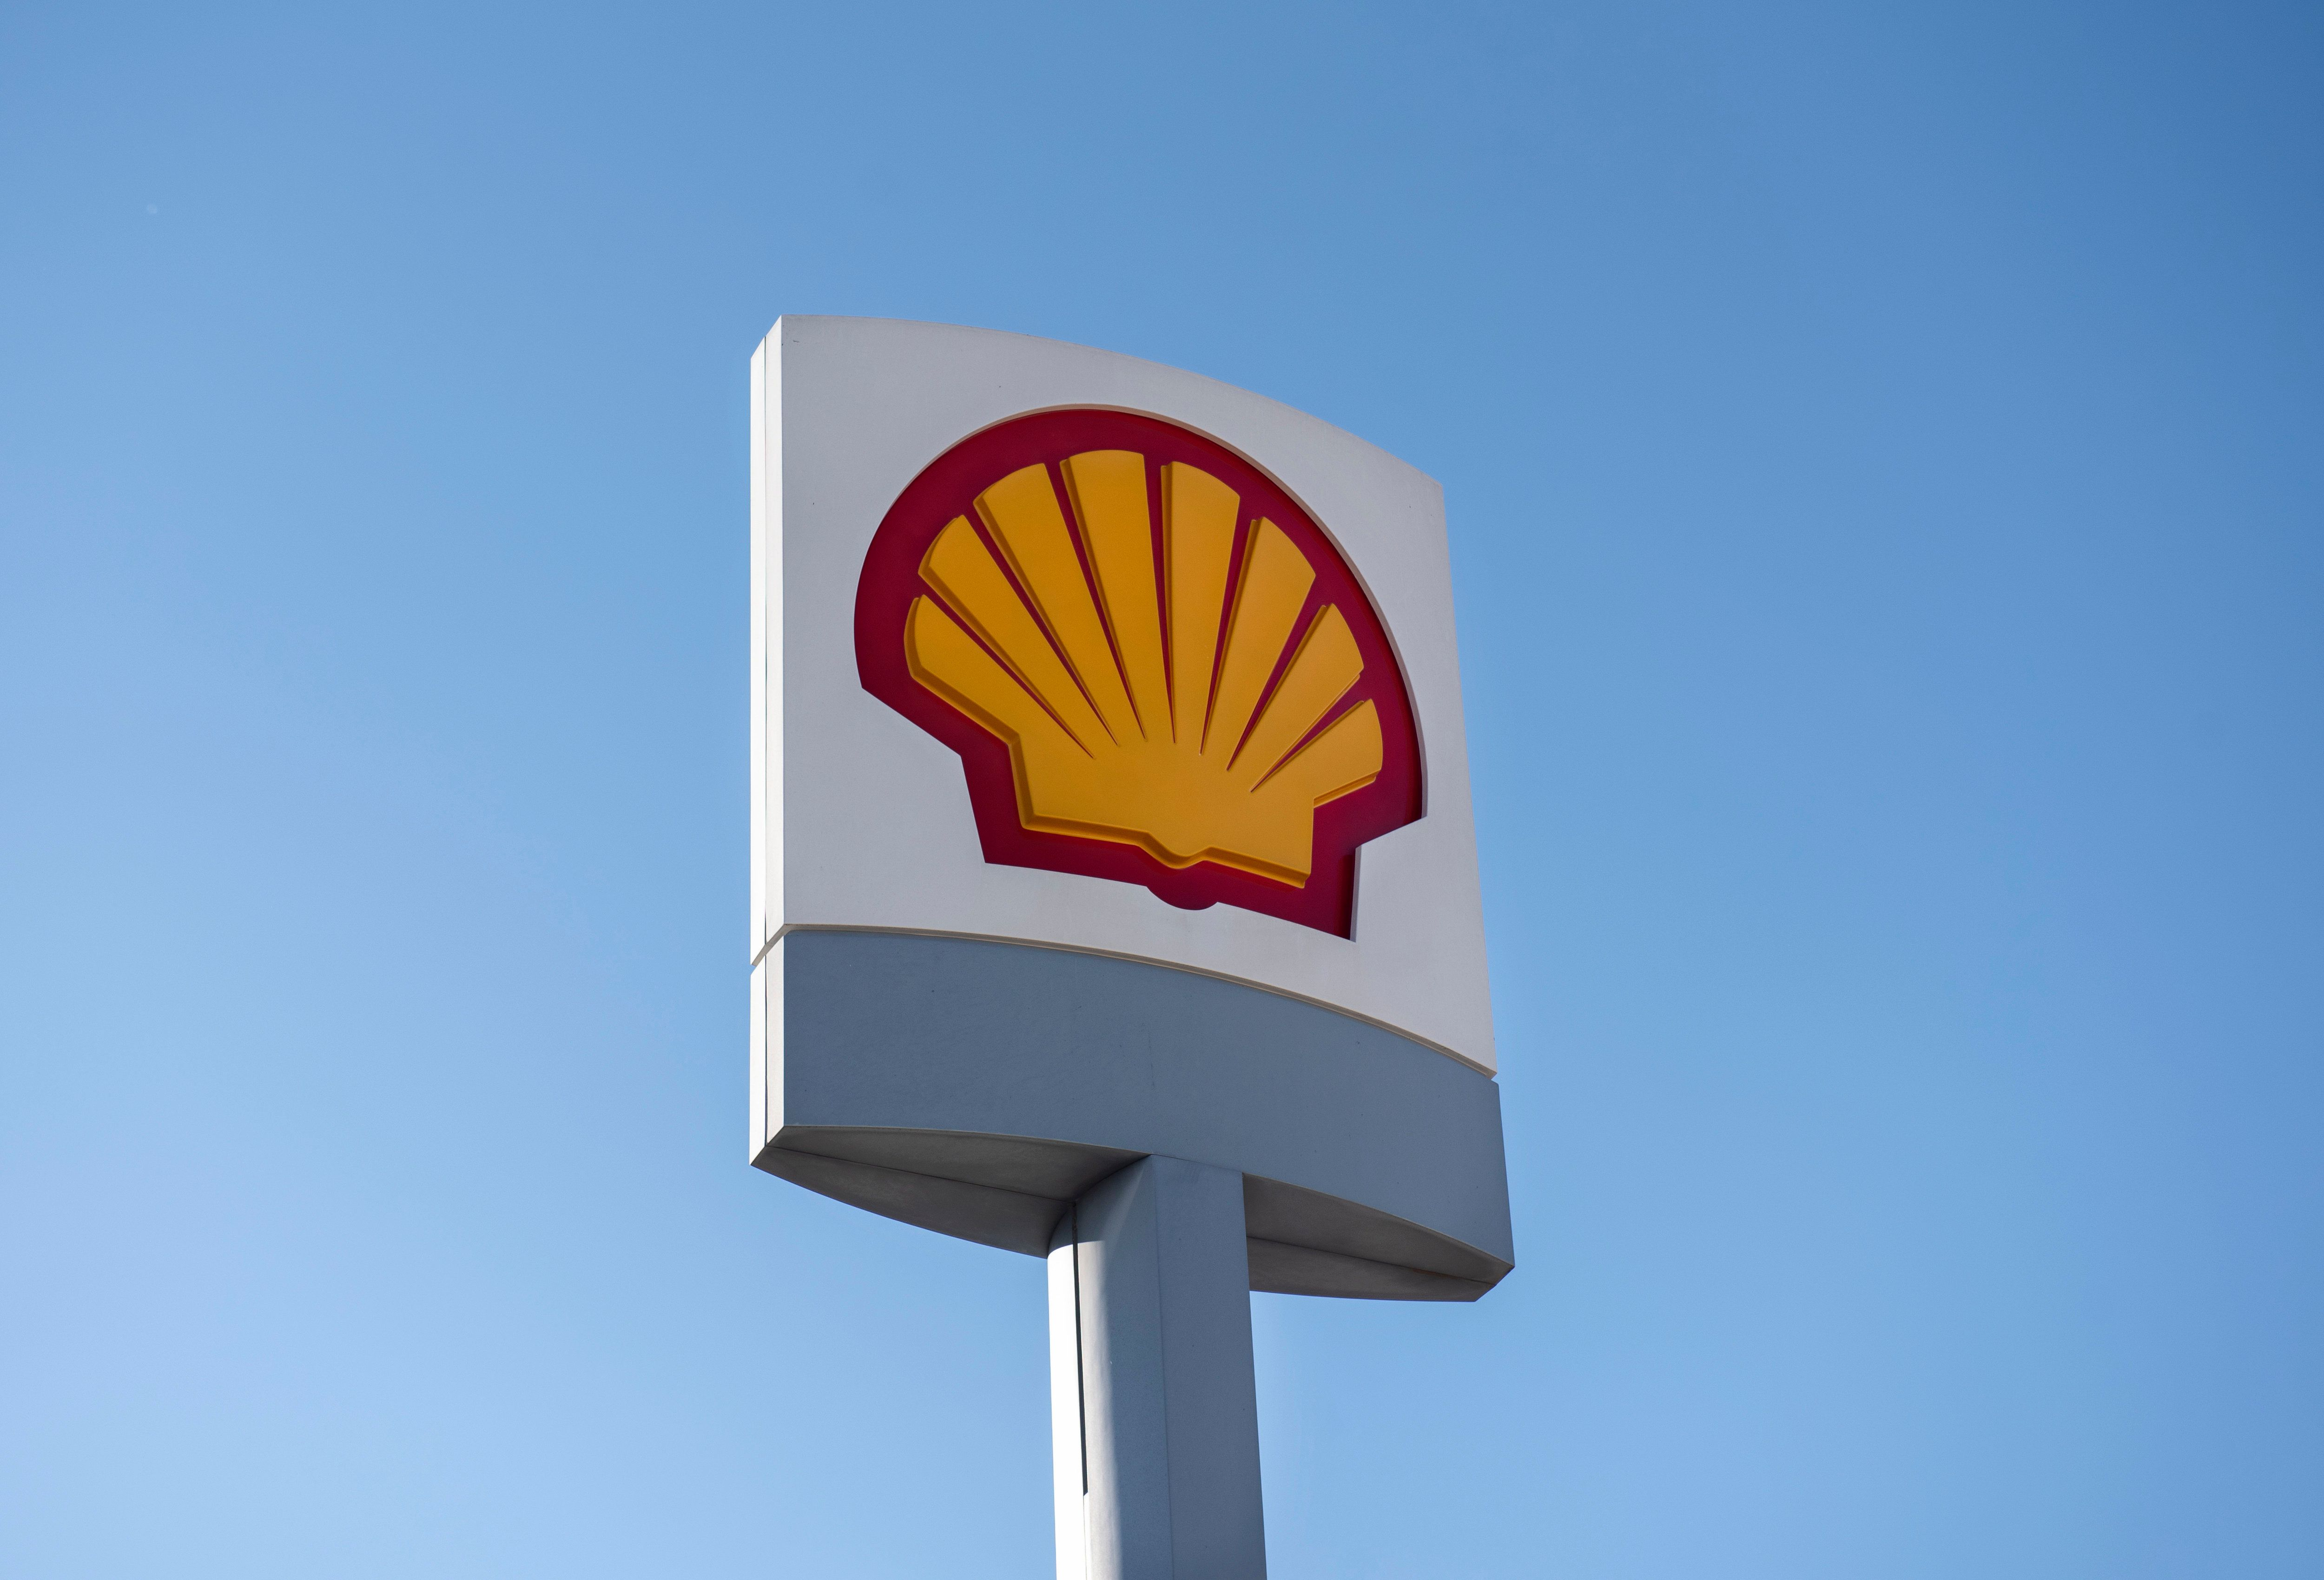 Shell Becomes First Energy Company To Link Executive Pay To Carbon